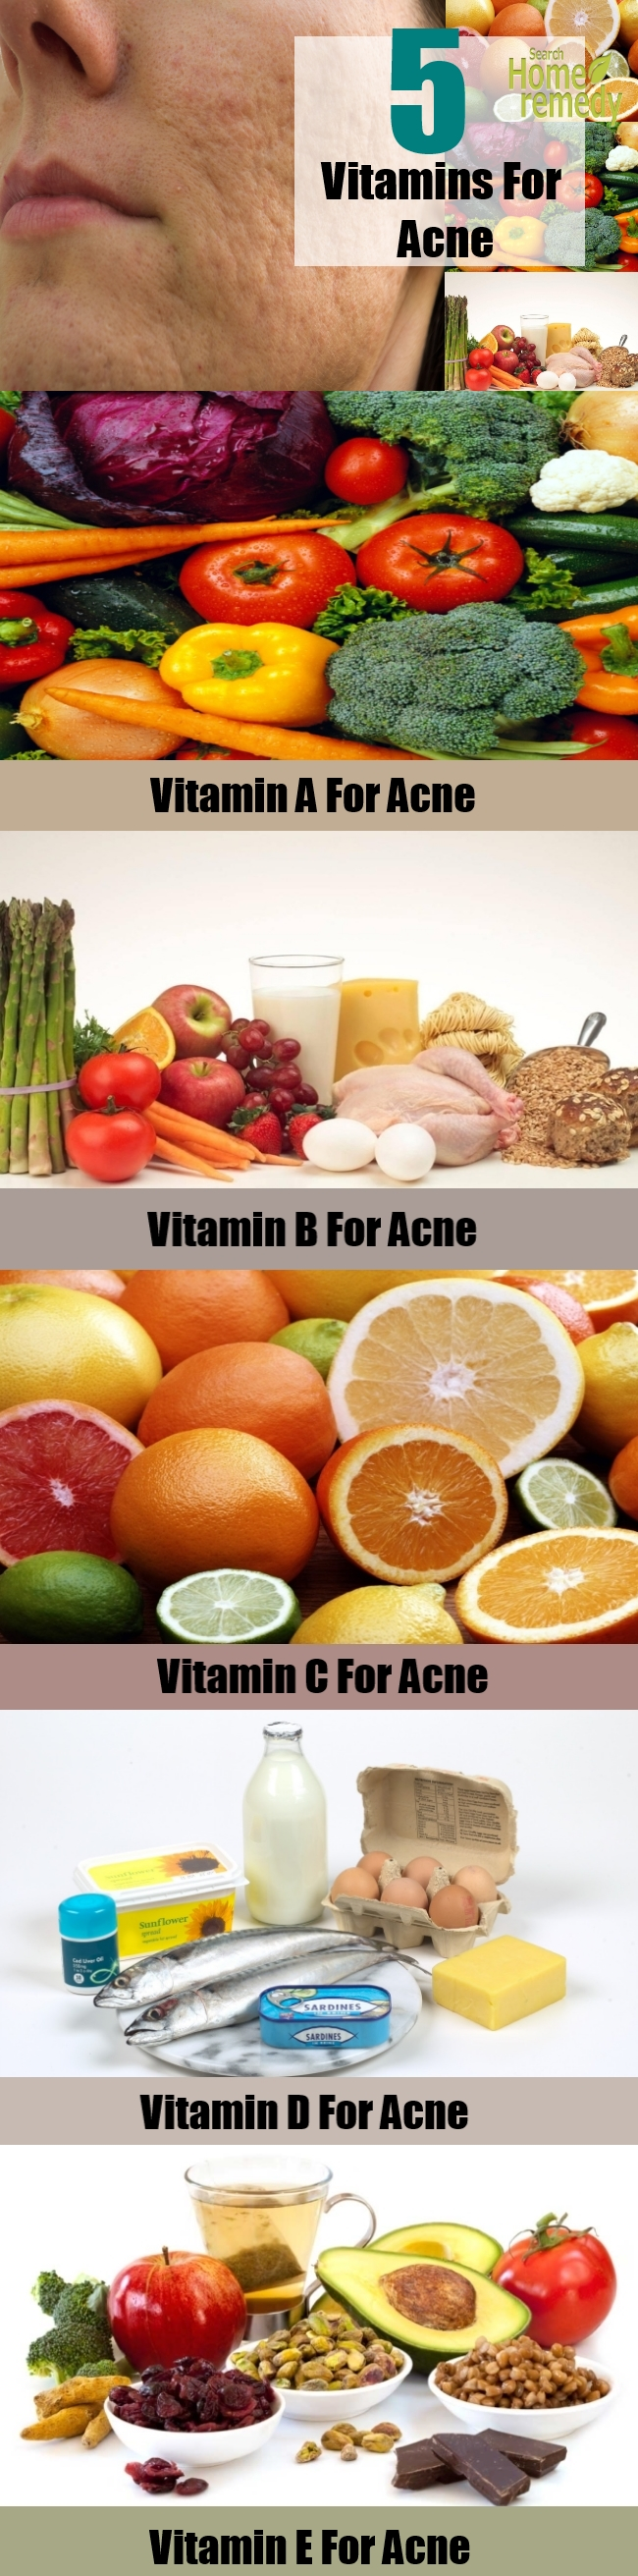 Top 5 Vitamins For Acne